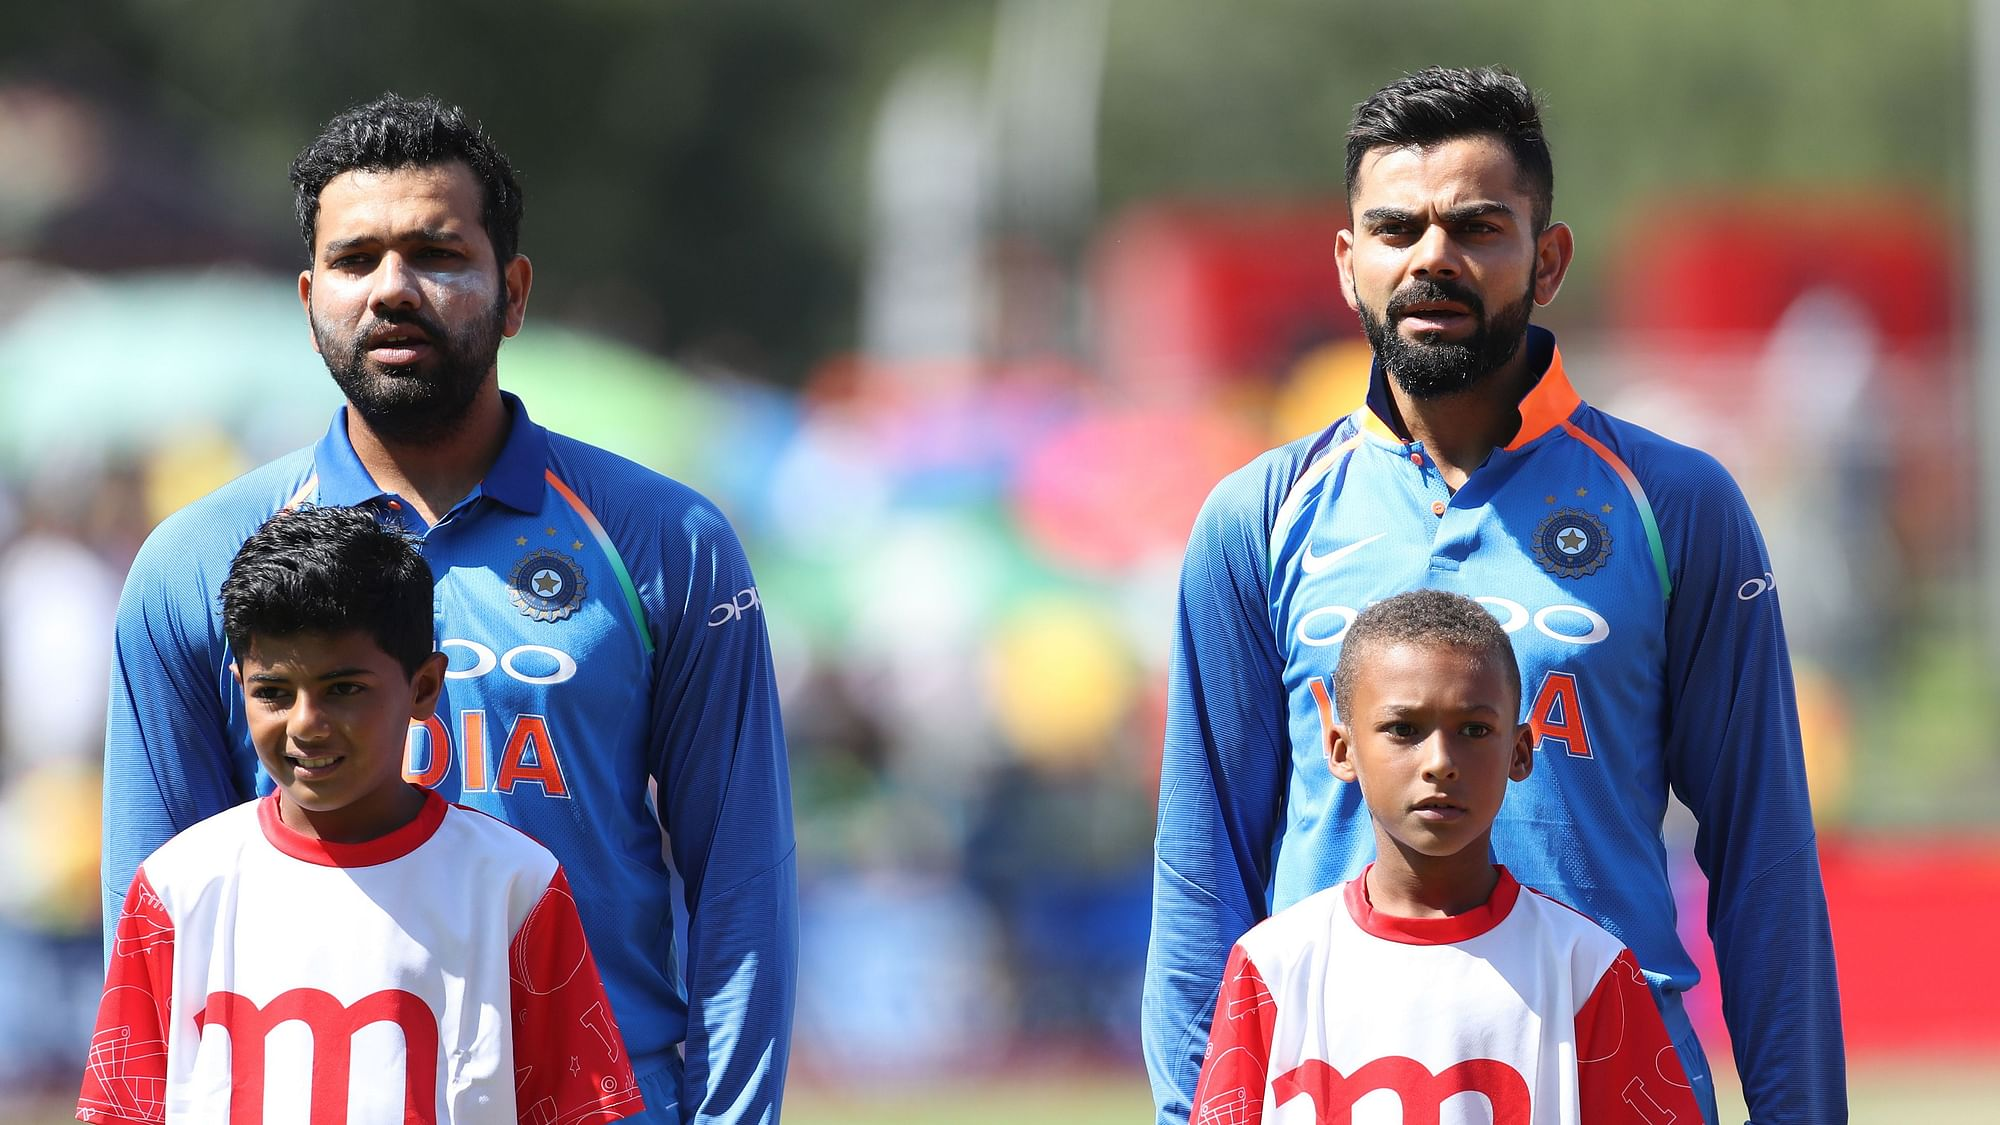 Kohli-Rohit Records' Rivalry Moves to ODIs With WIndies Series